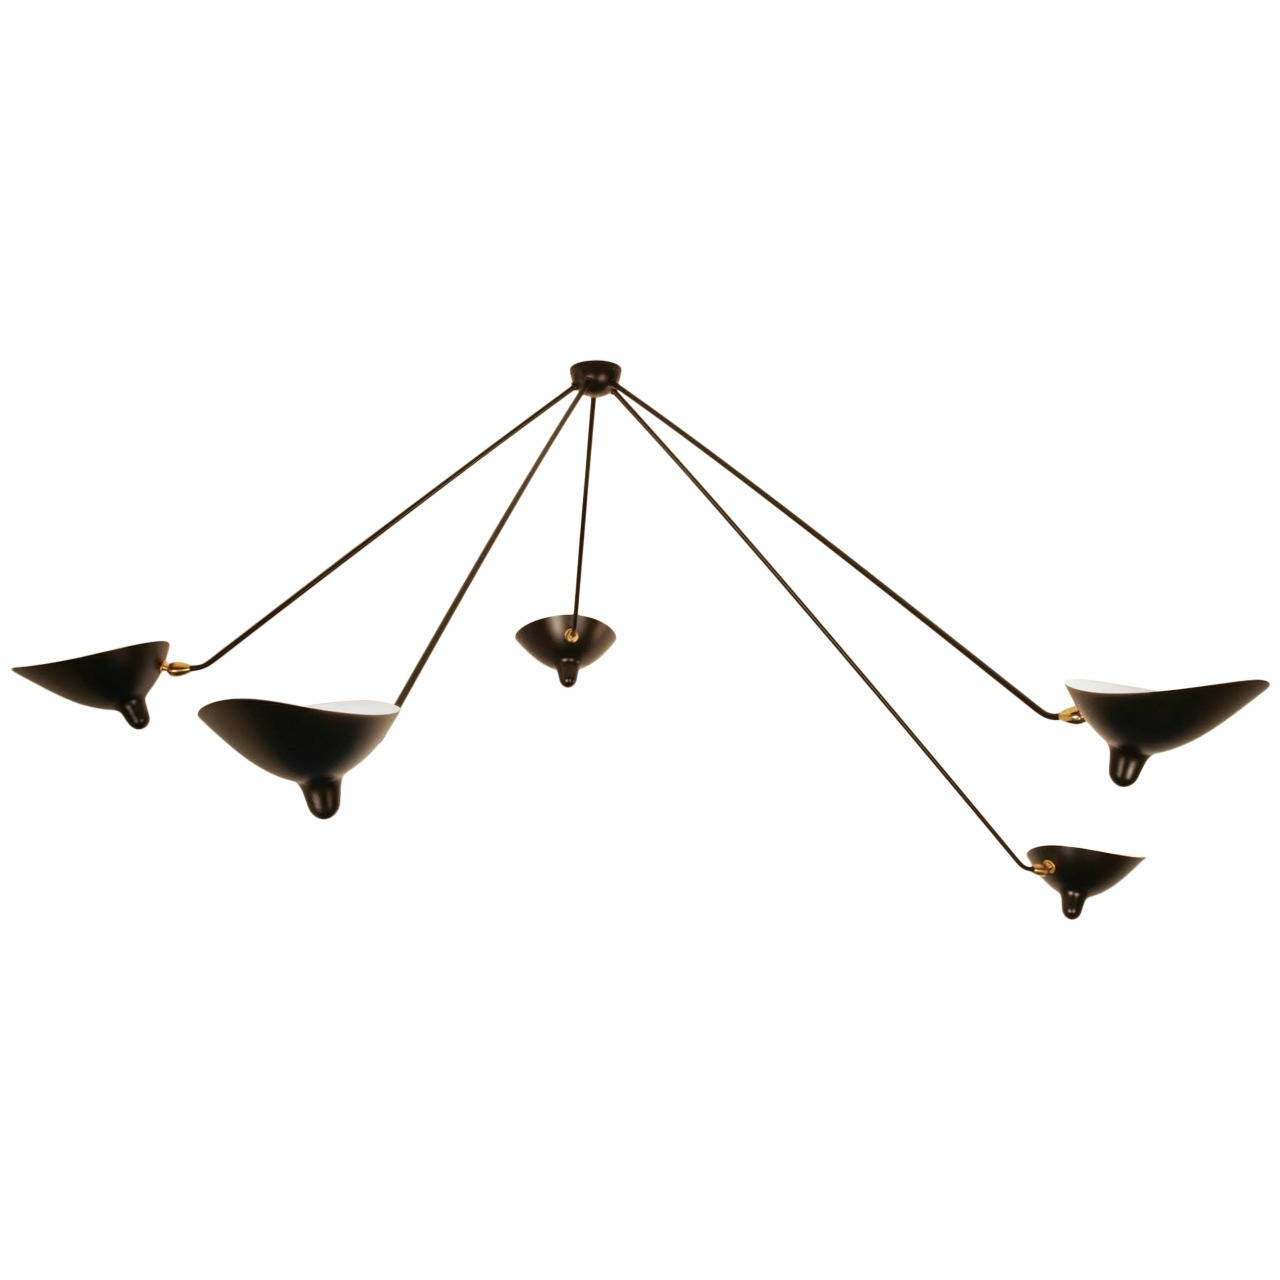 Design Serge Mouille serge mouille spider ceiling lamp with five arms for sale at 1stdibs 1